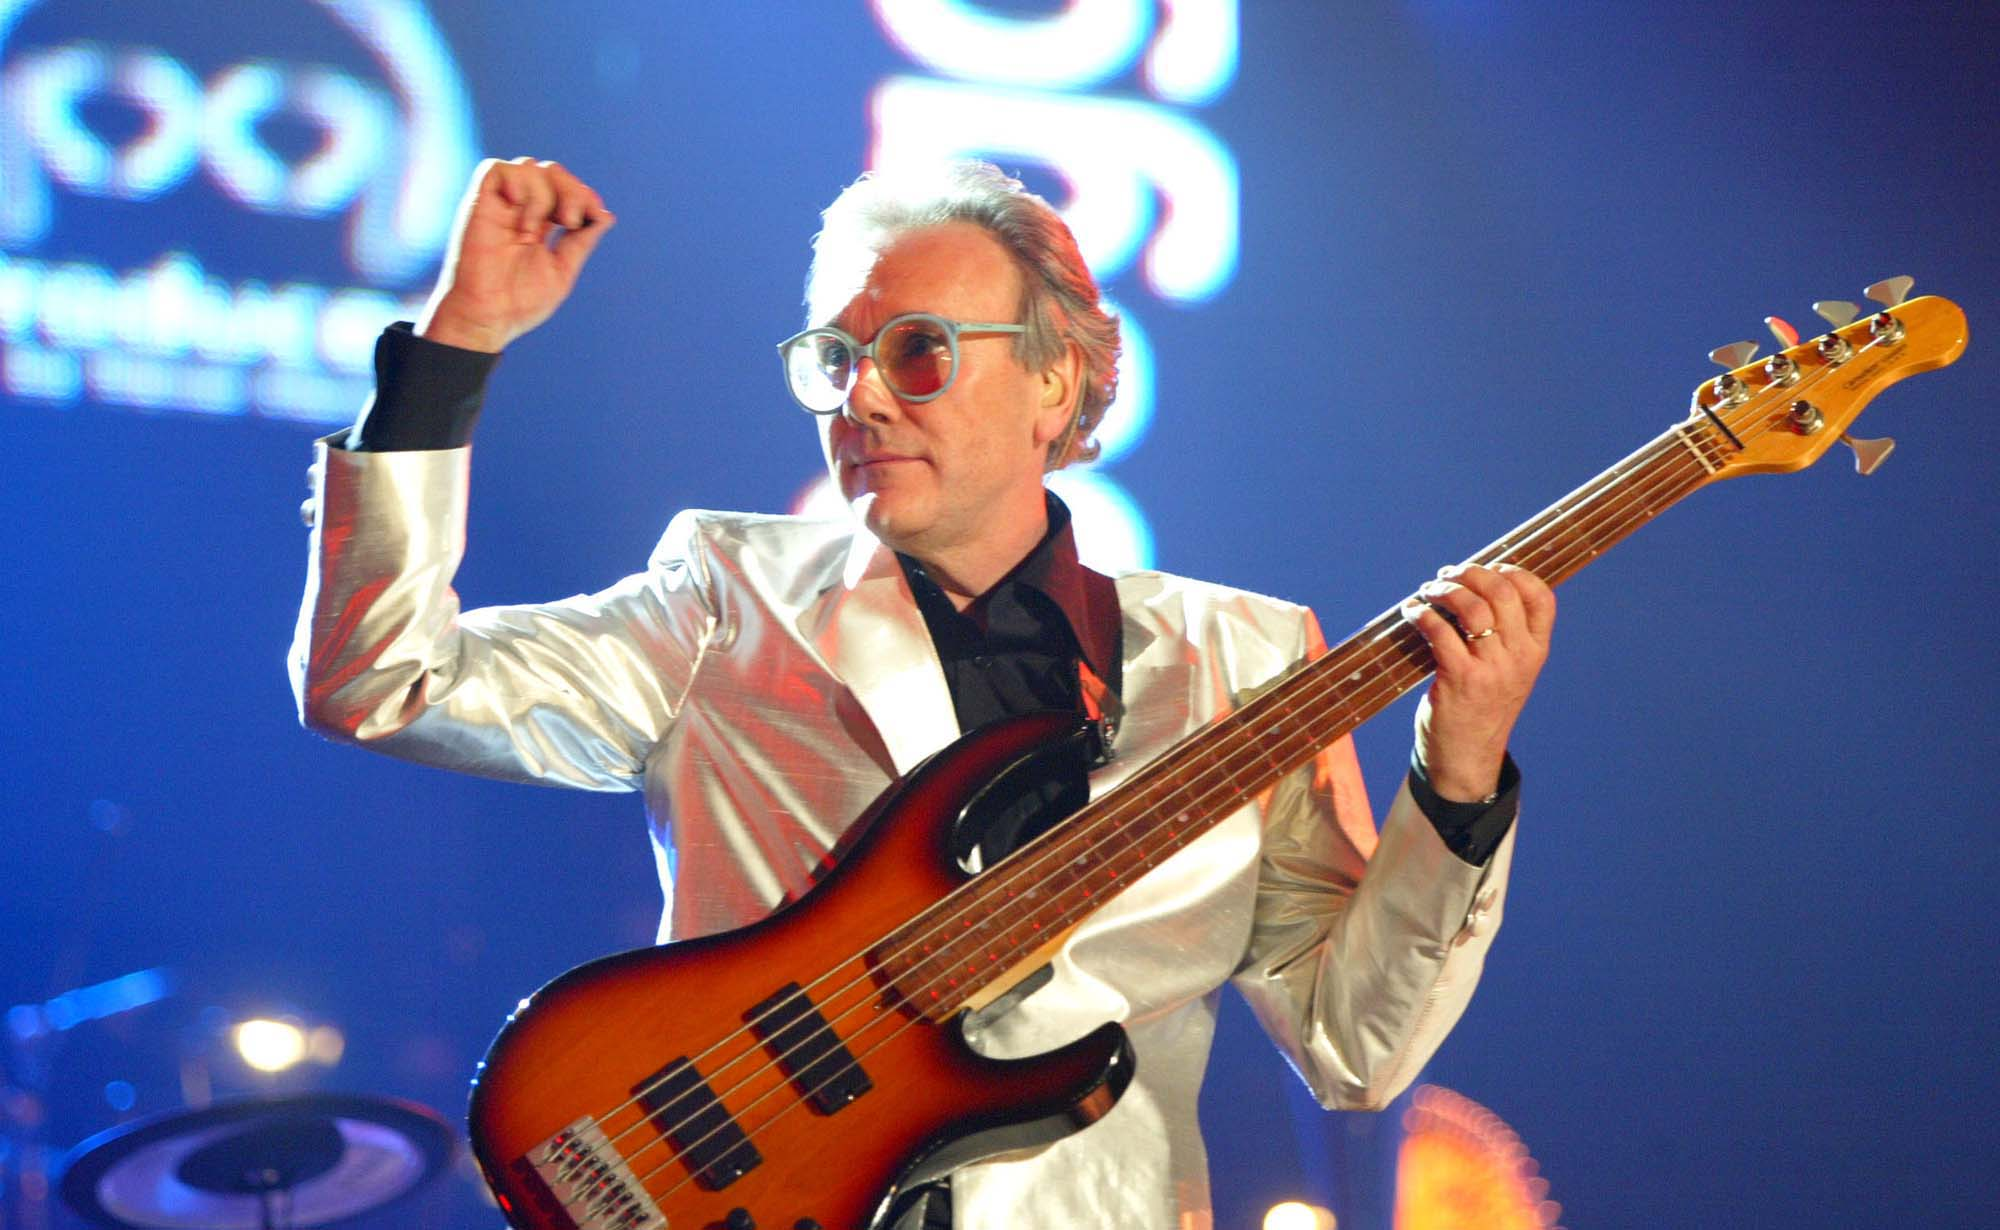 Trevor Horn plays bass